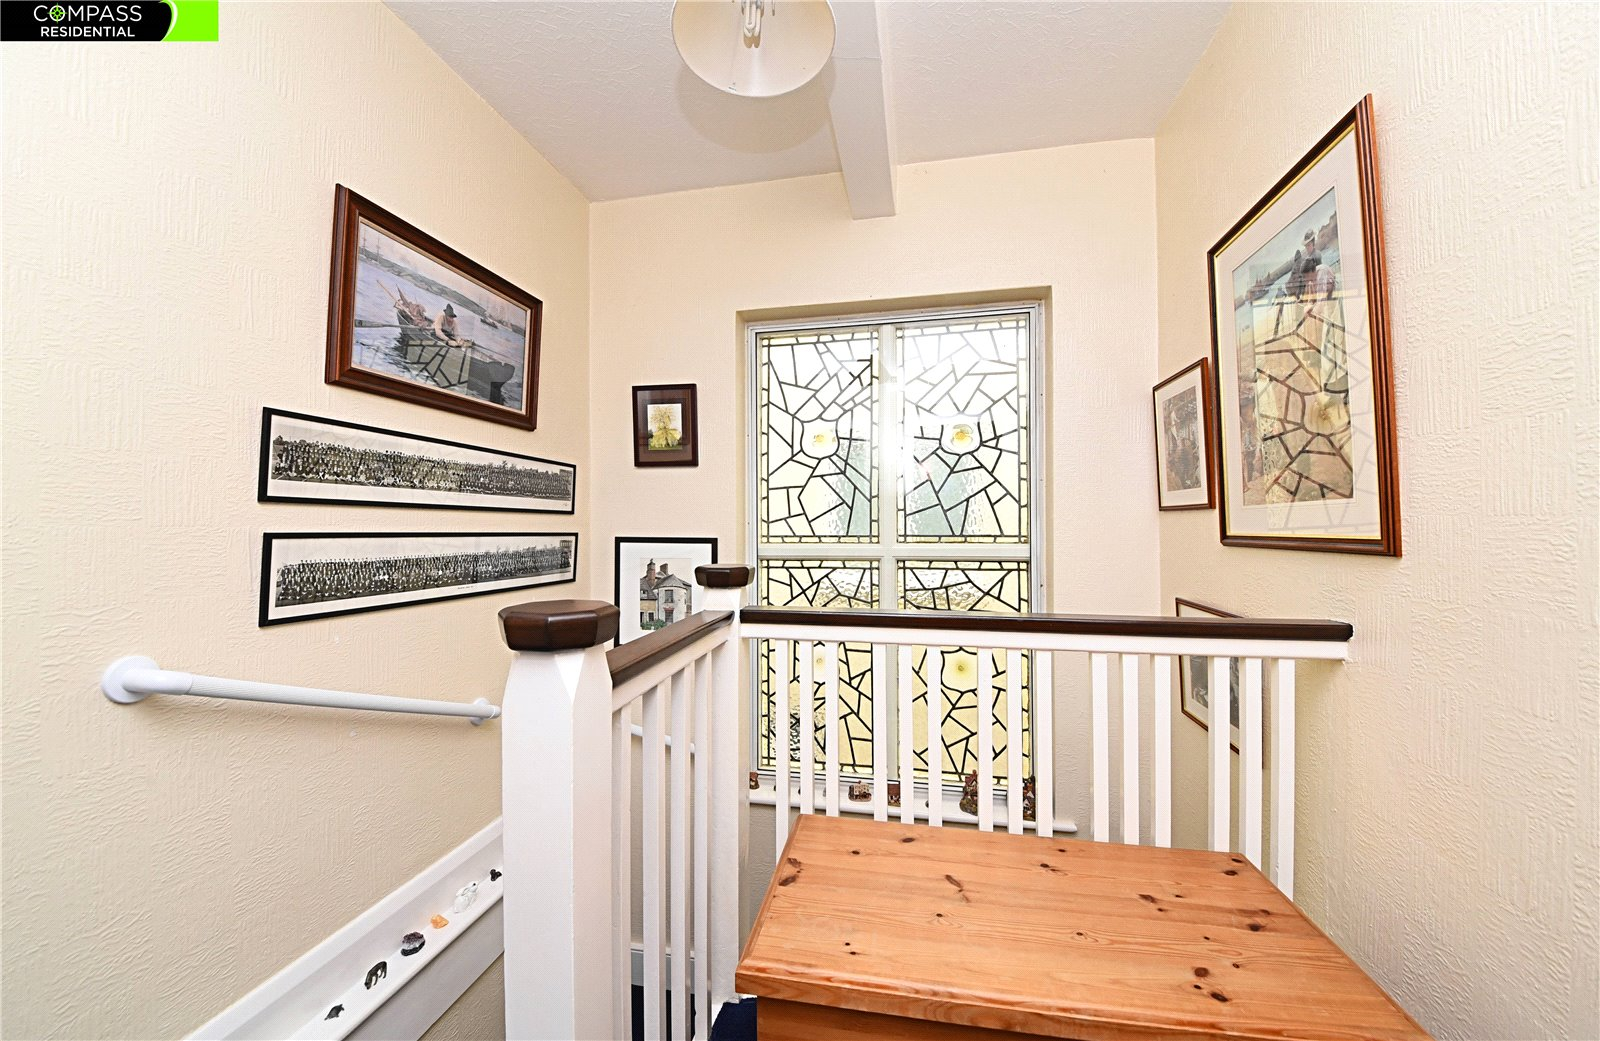 3 bed house for sale in Totteridge, N20 8HL  - Property Image 10